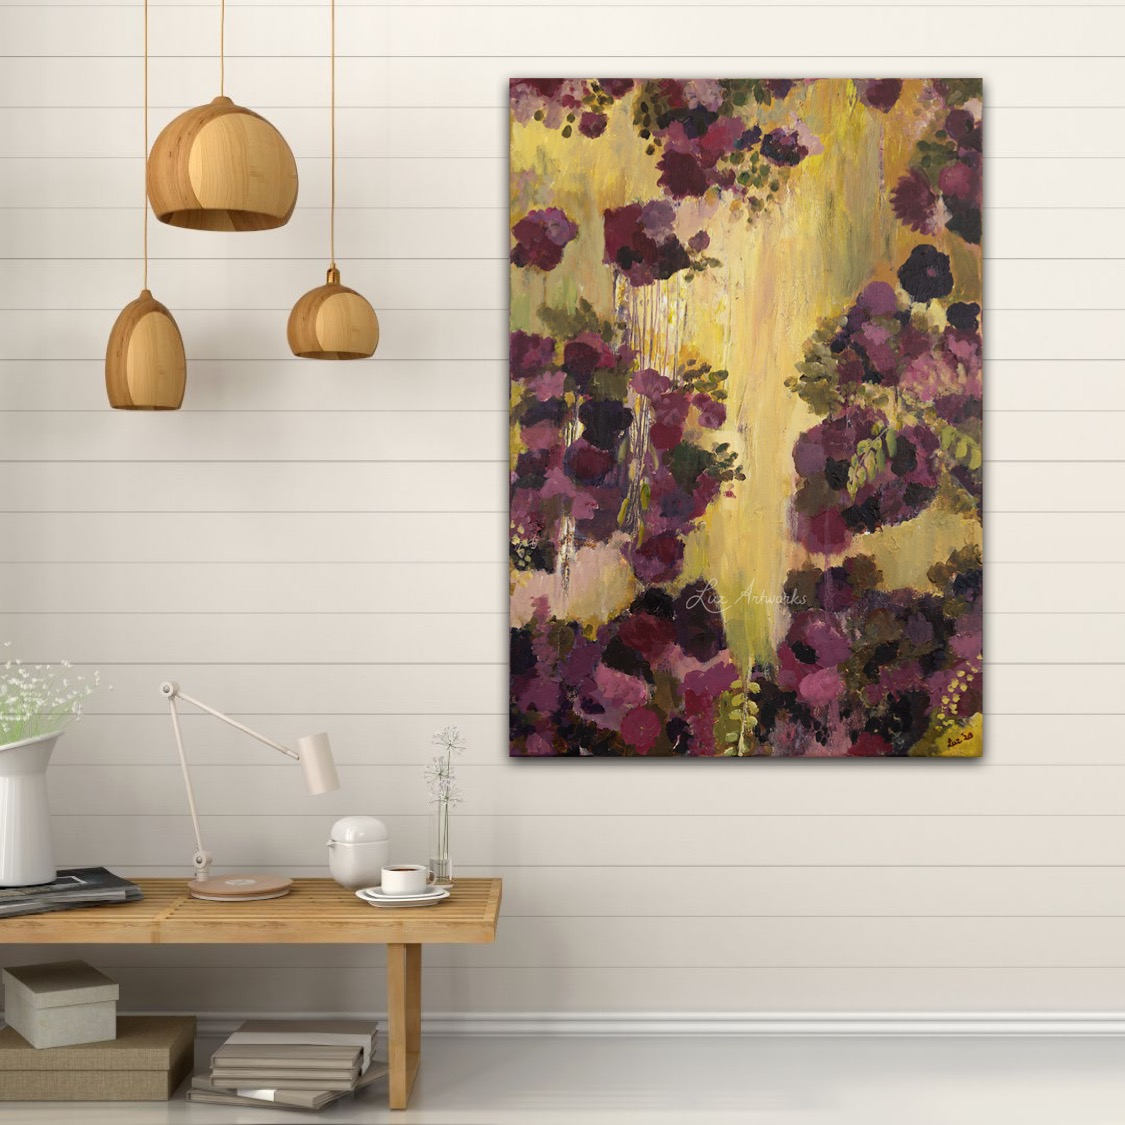 Dream Flowers by Marloes Bloedjes - on the wall